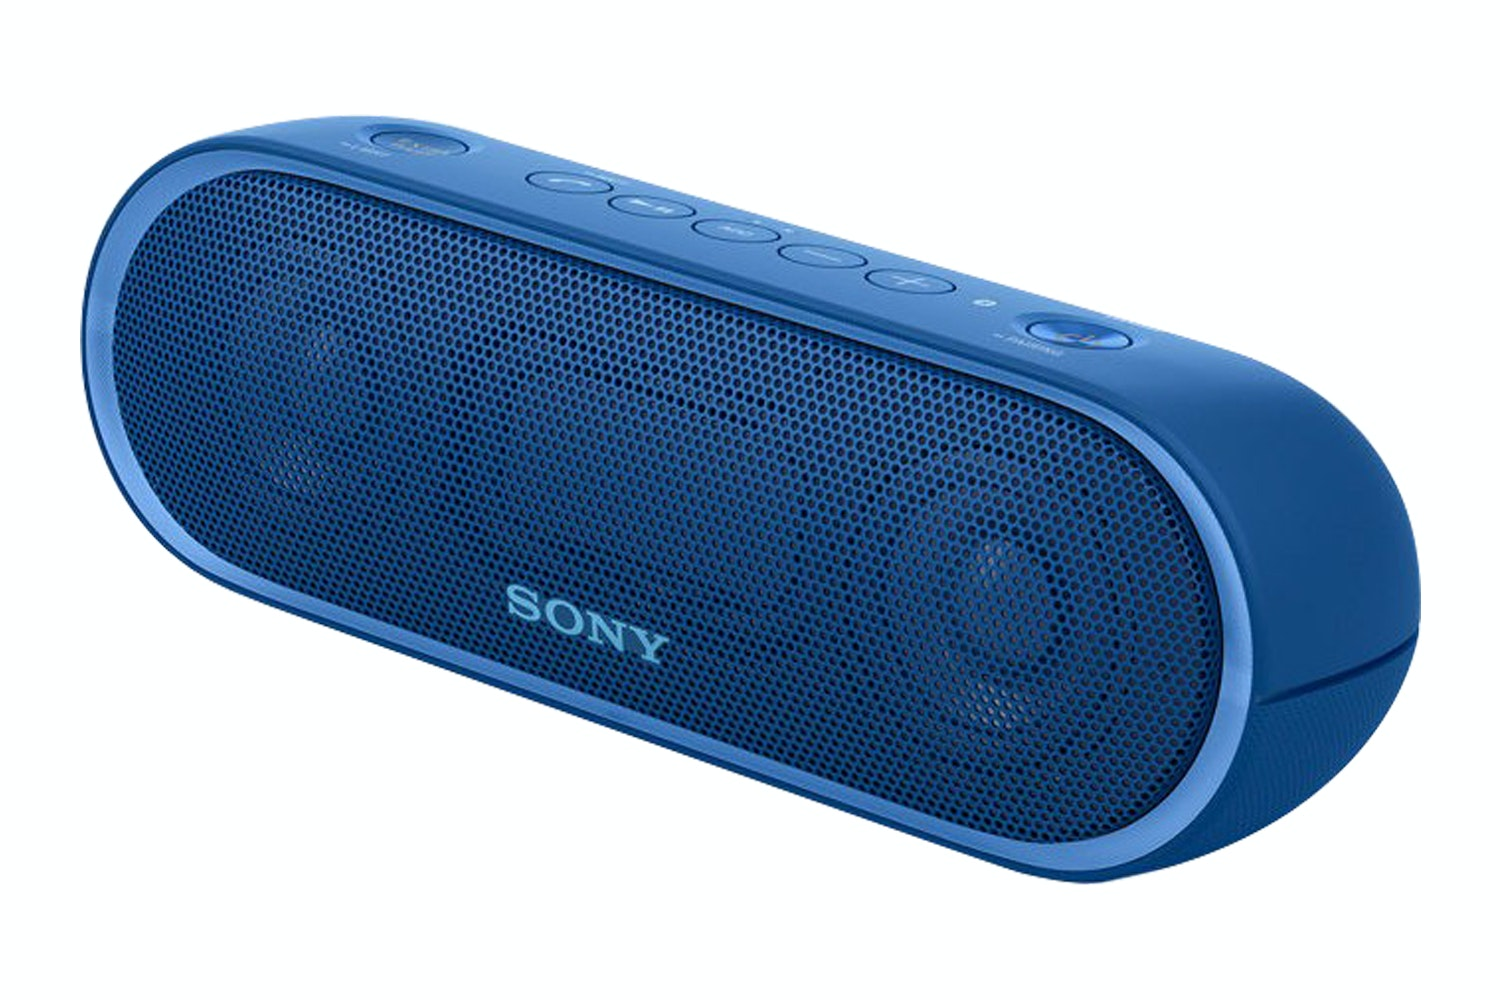 Sony Bluetooth Speaker | SRS-XB20 | Blue